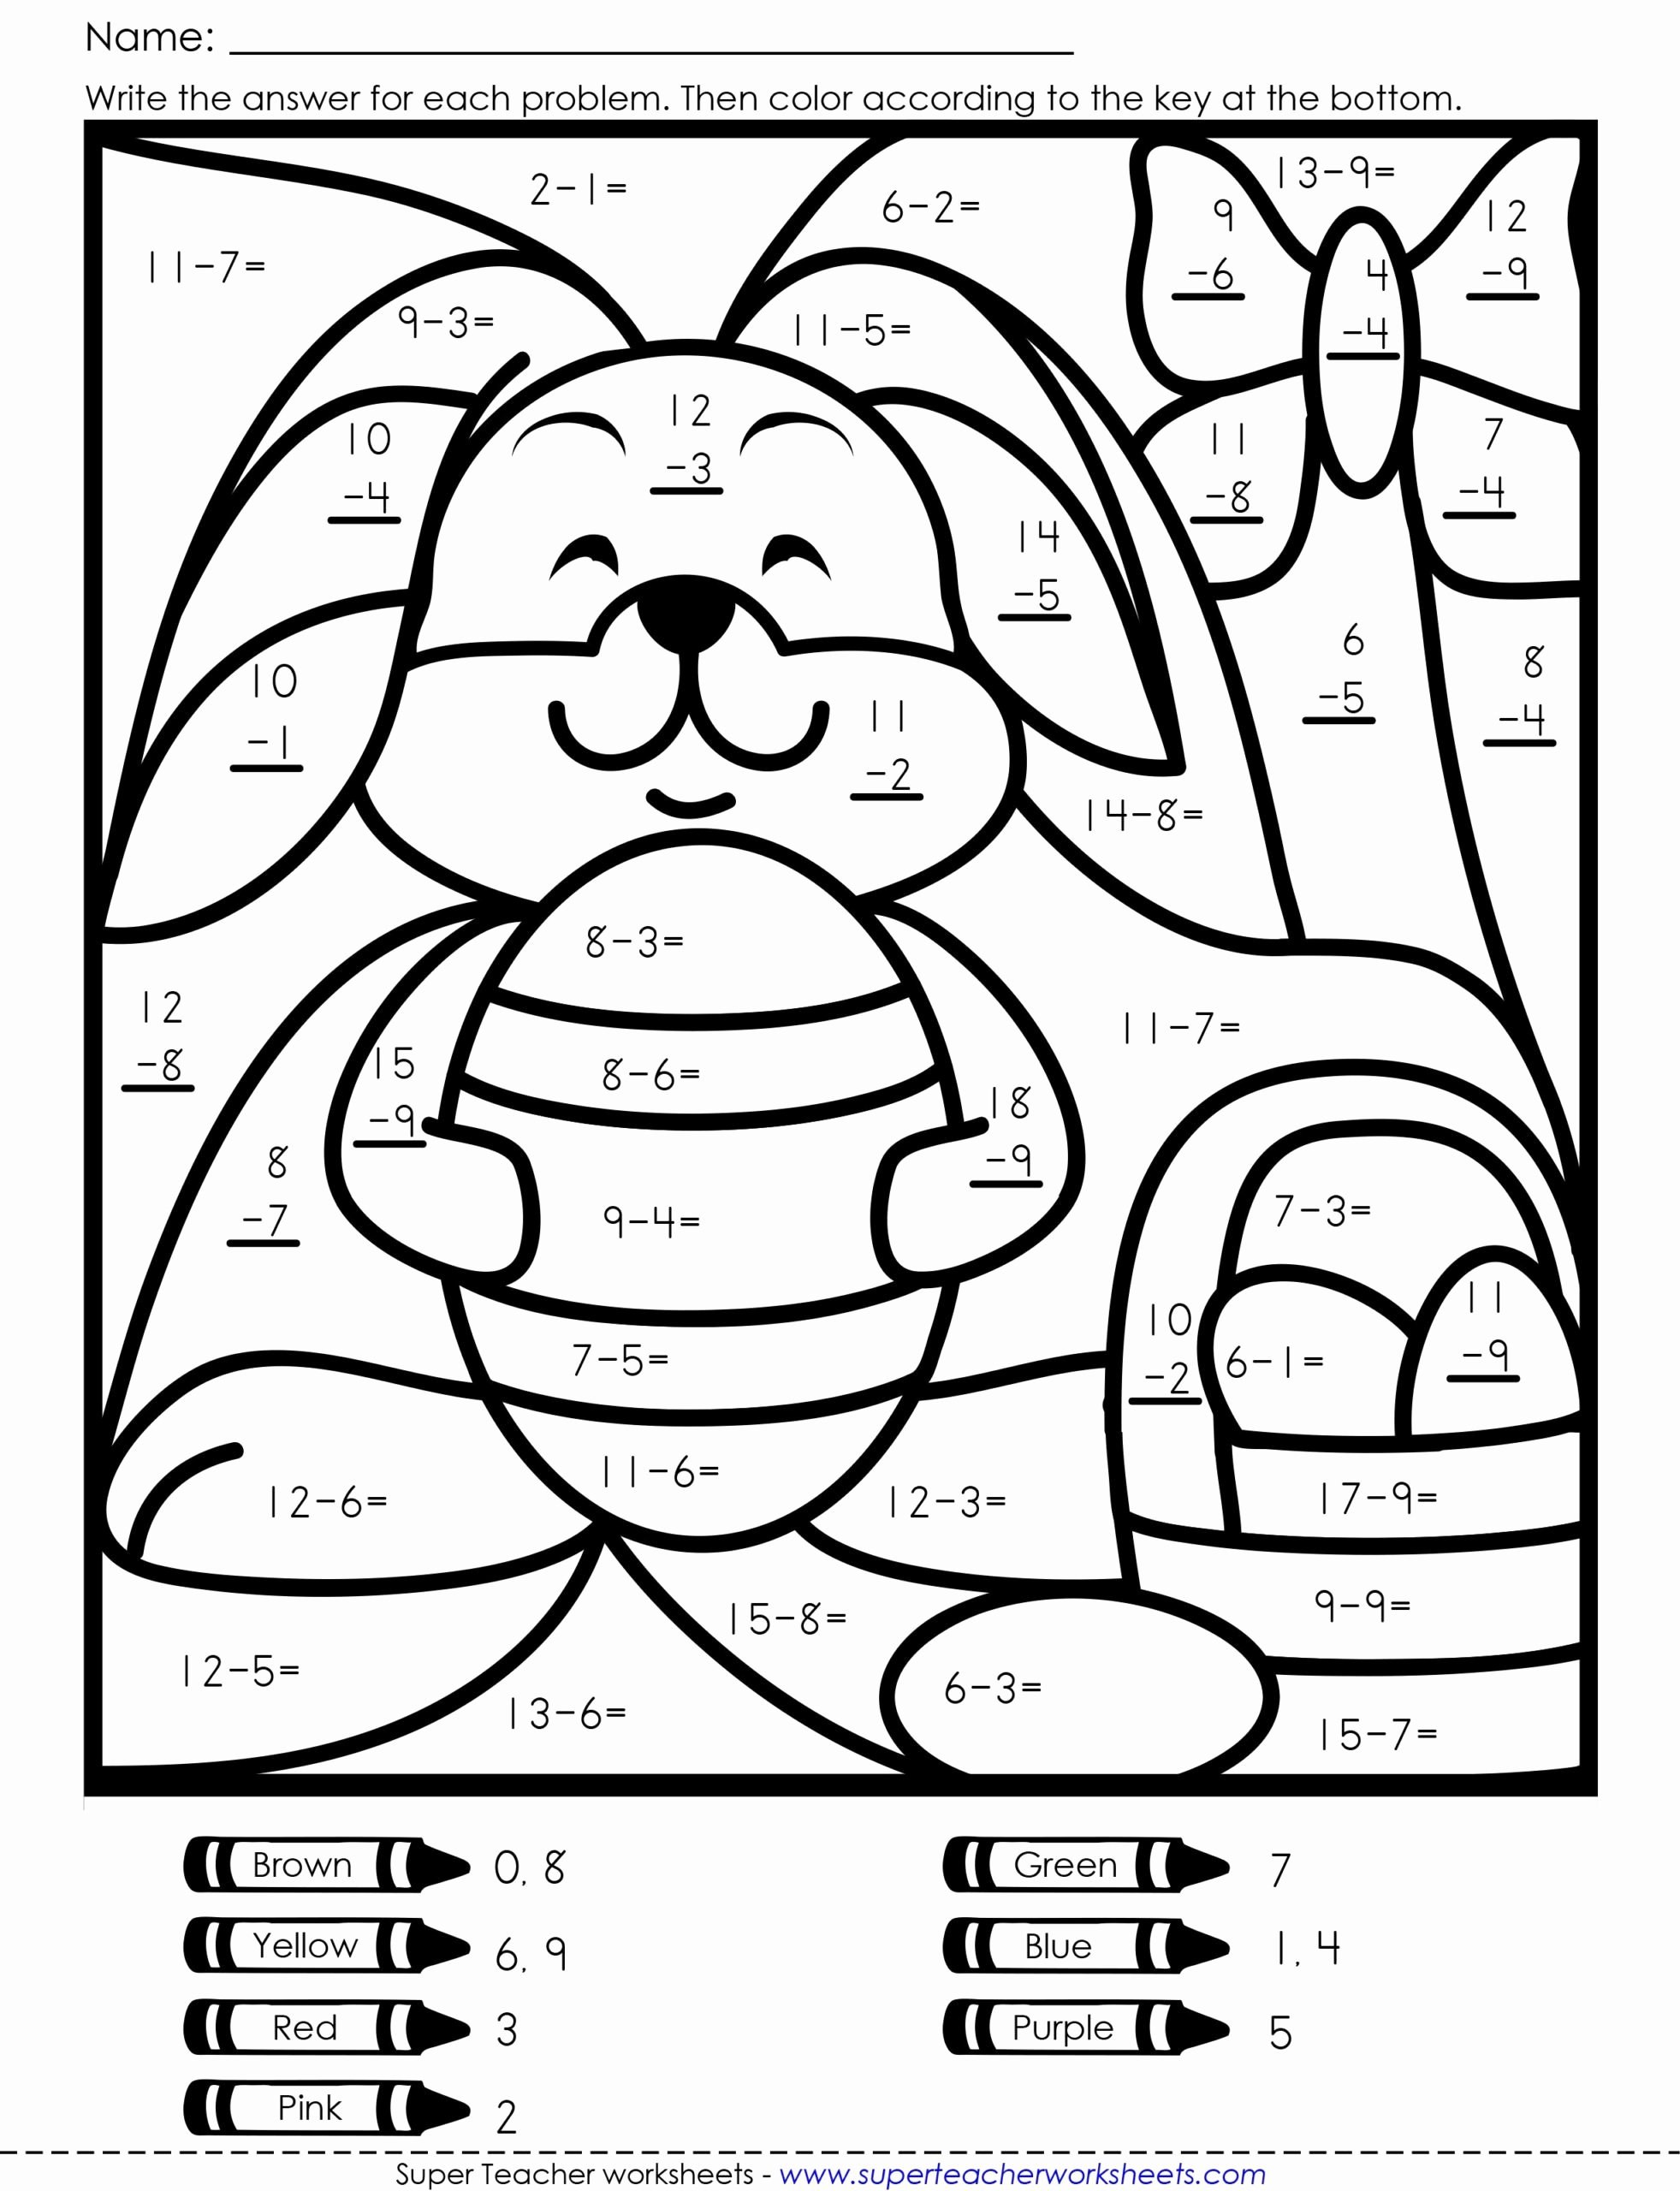 Easter Math Worksheets for Preschoolers Best Of Worksheets Coloring Book Easter Math Free Worksheets 5th